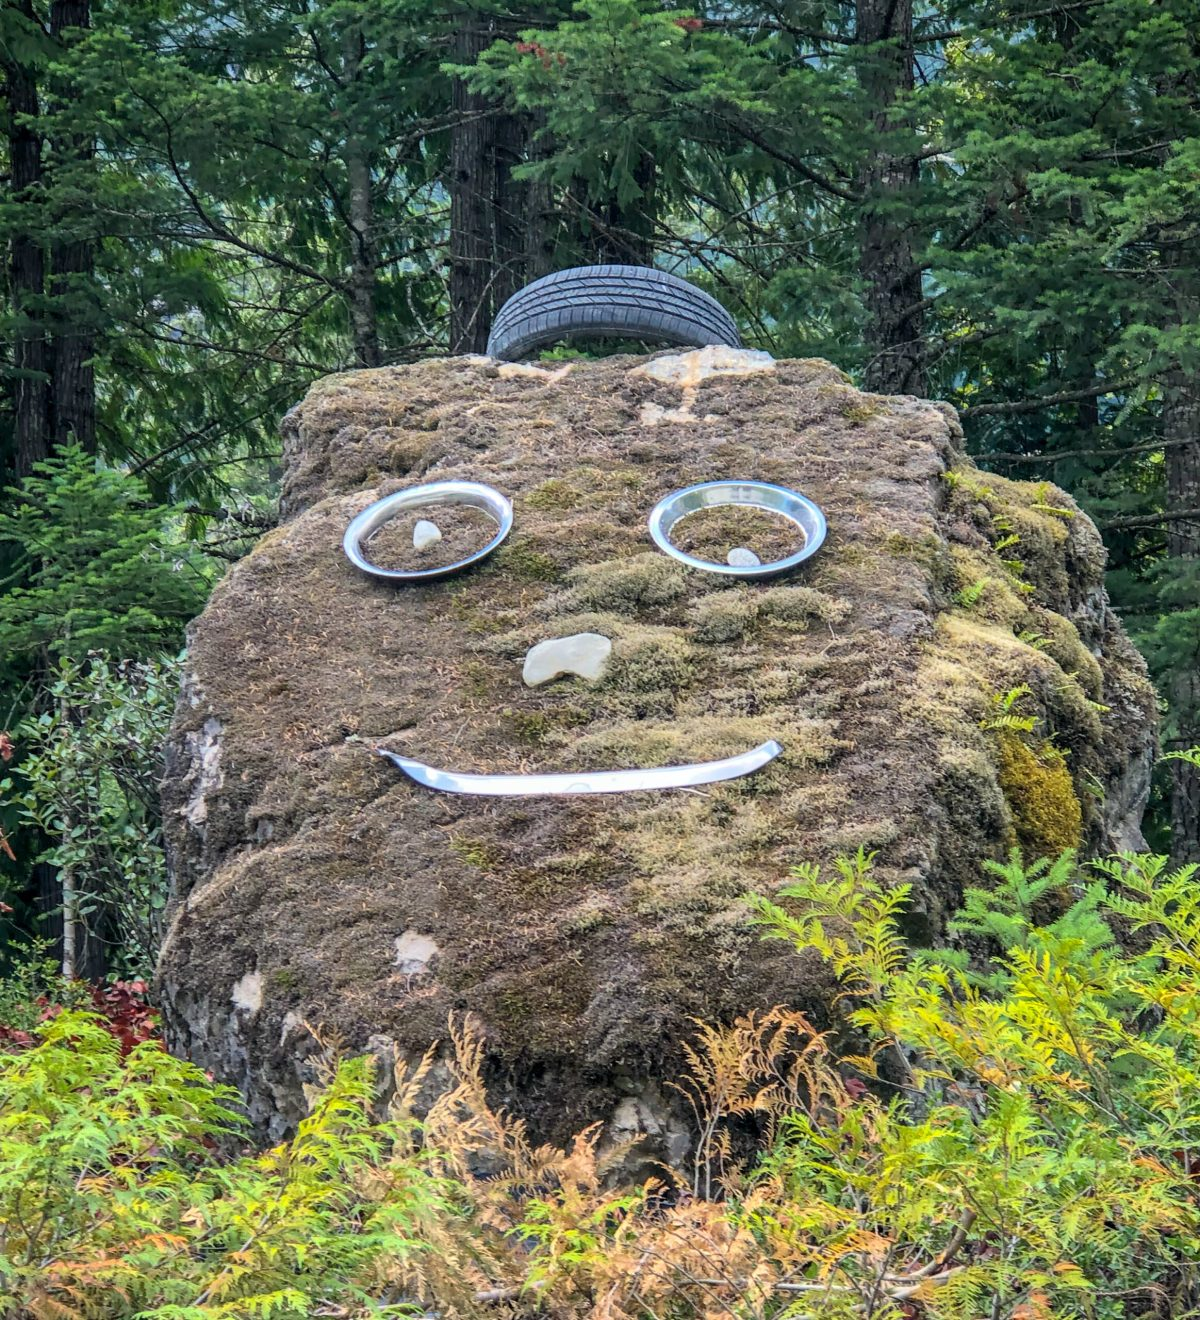 rock art discovered in Harrison Hot Springs area